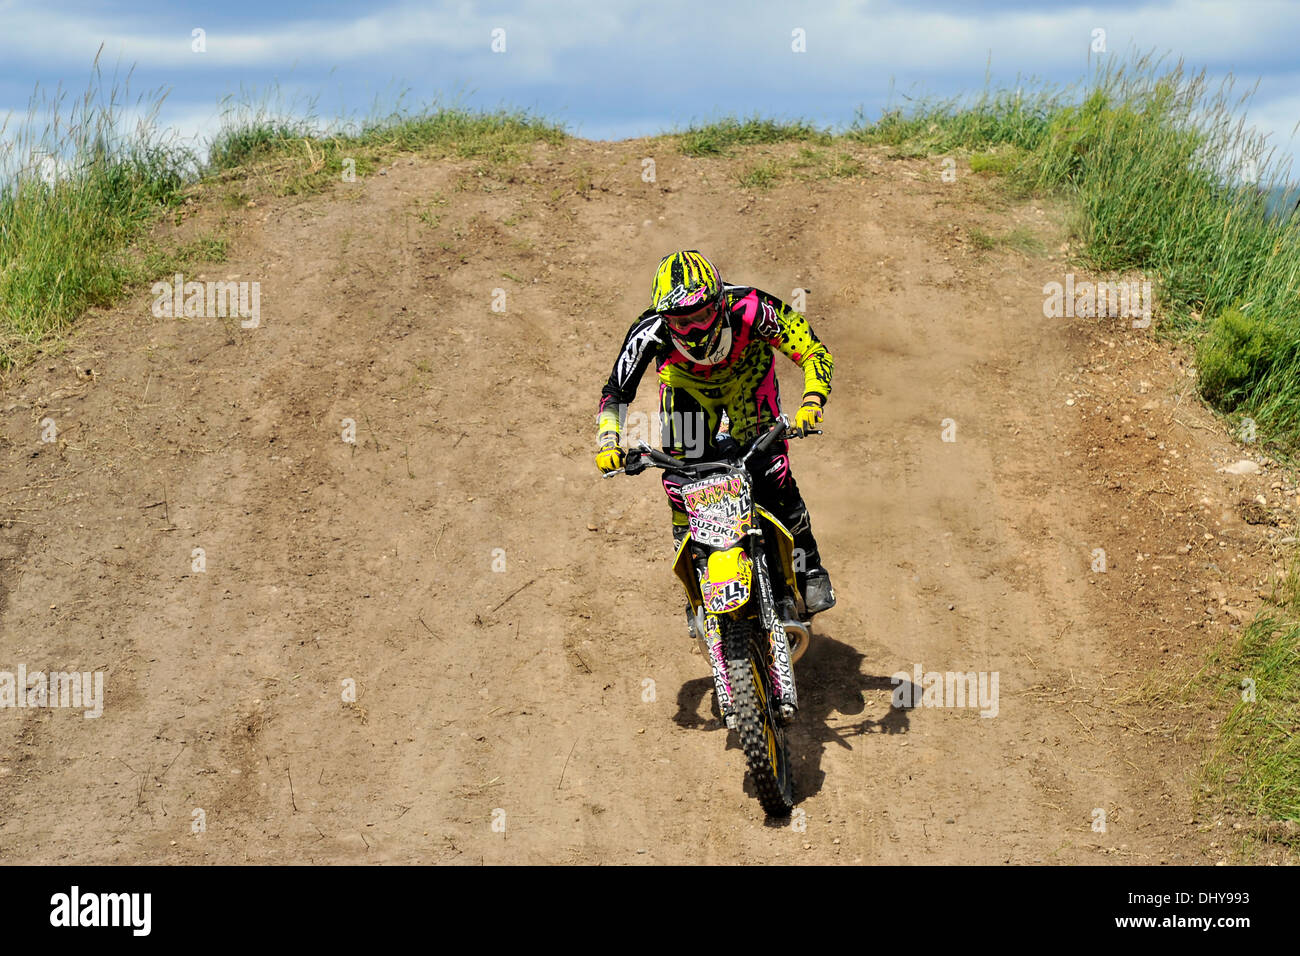 A motocross bike rider  riding down a hill on a gravel track - Stock Image